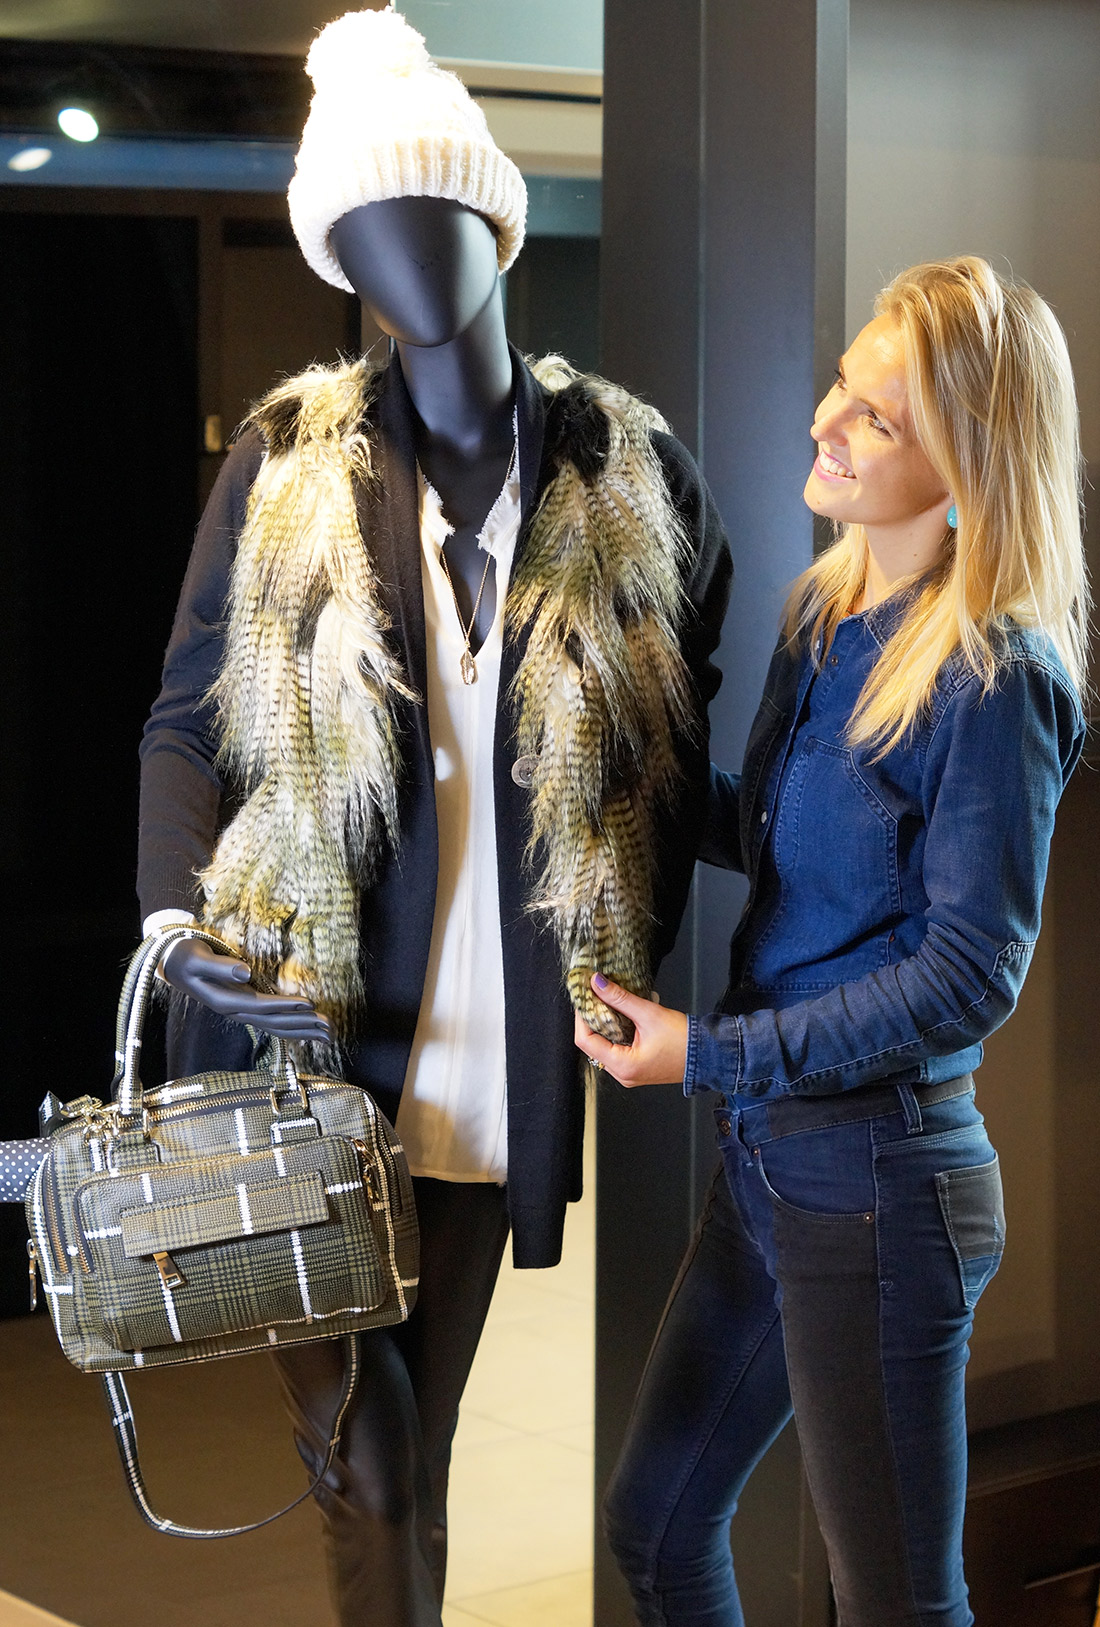 Bag-at-You---Fashion-blog---Blogger-and-outfit---Urban-outdoors---Unexpected-Fashion-Battle-in-Amstelveen